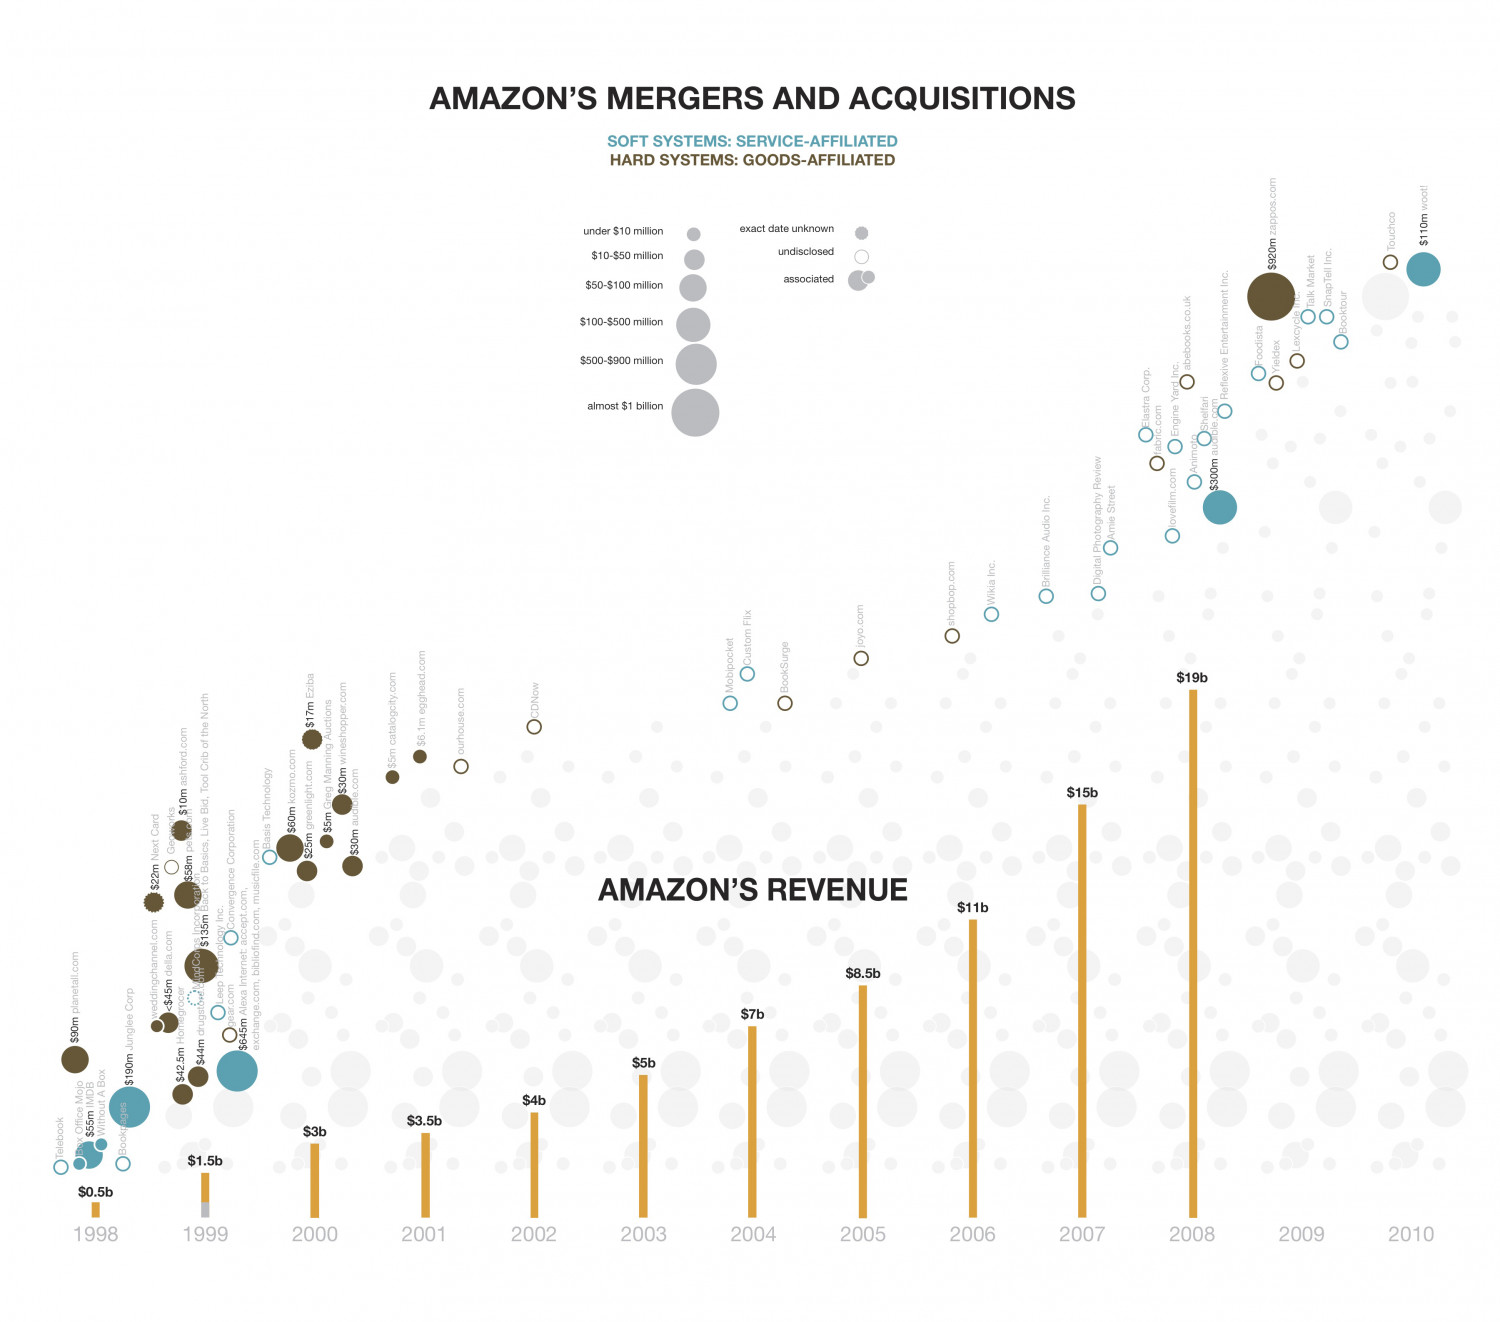 Amazon: Revenue and Mergers & Acquisitions Infographic